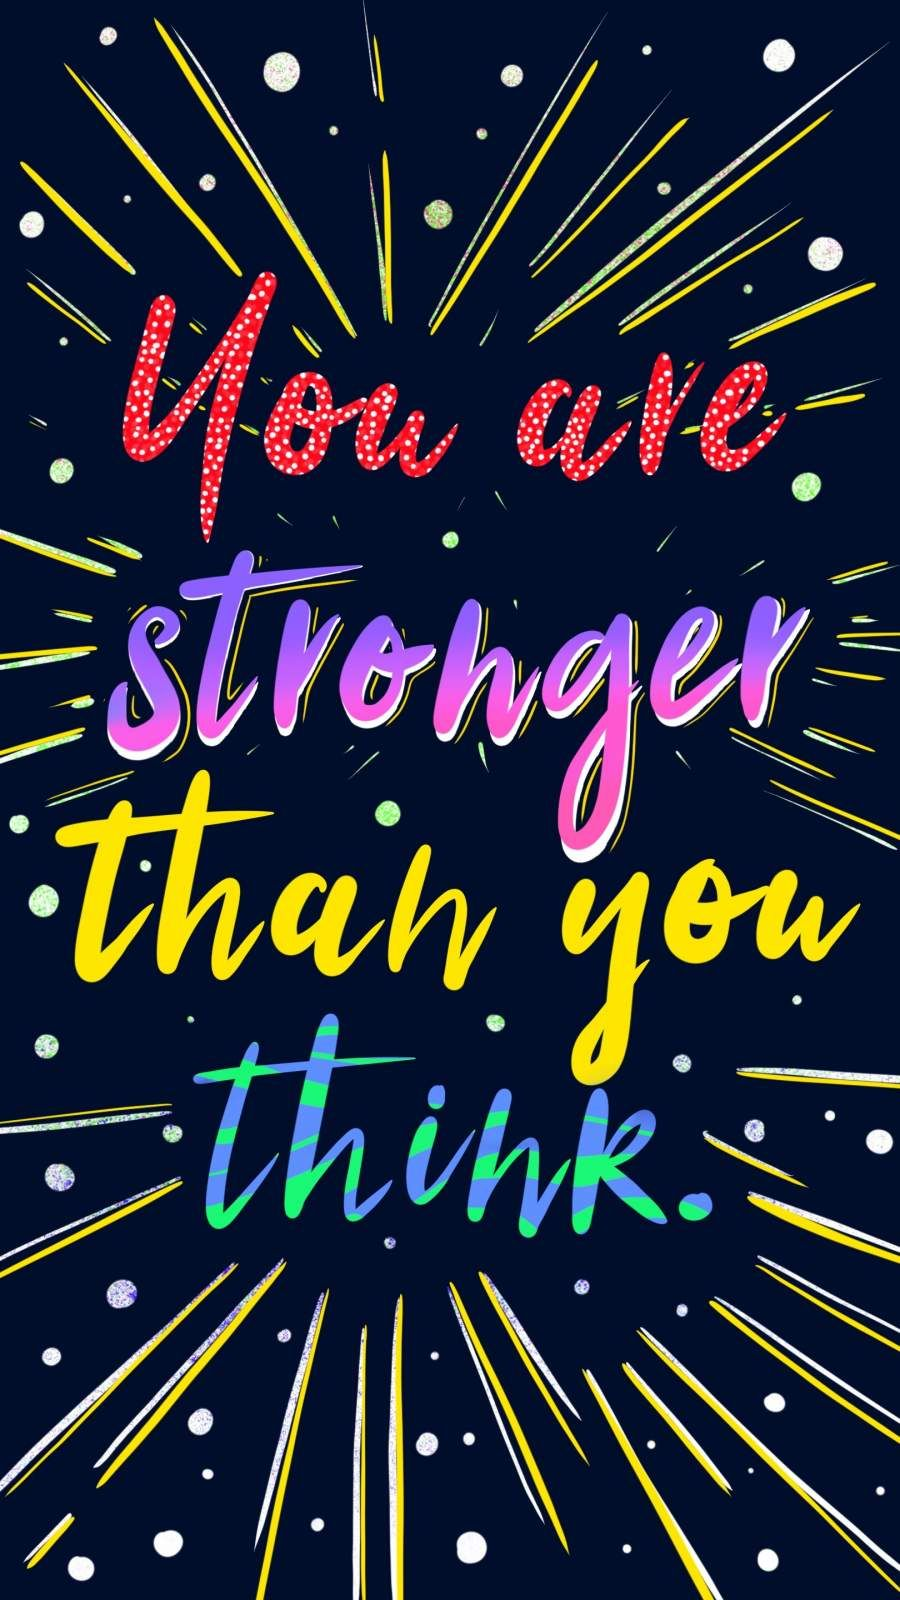 Stronger than you think iphone wallpaper in 2020